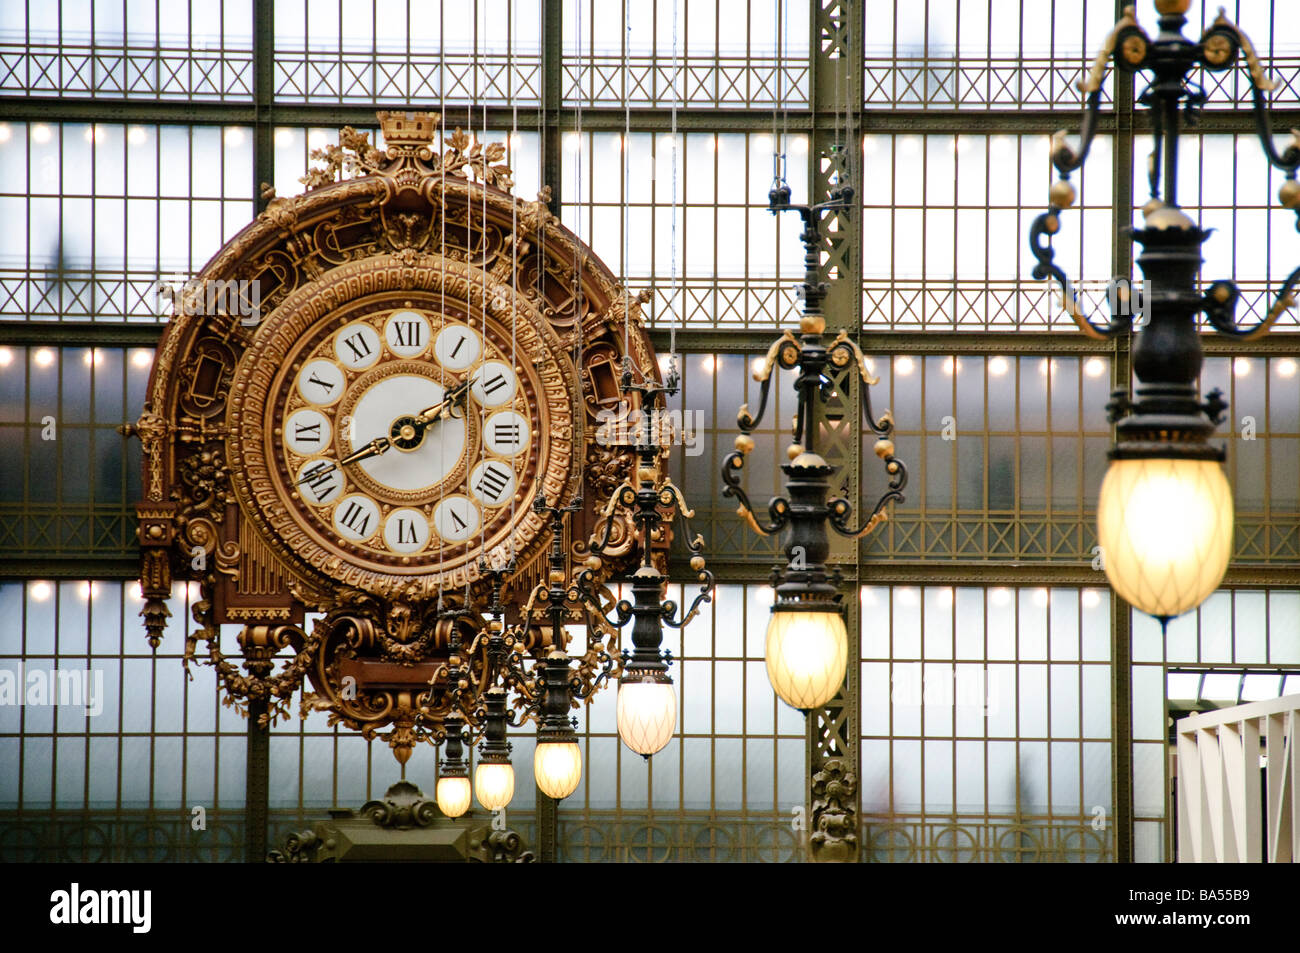 PARIS, France - Ornate clock in the main hall of the Musée d'Orsay - Stock Image